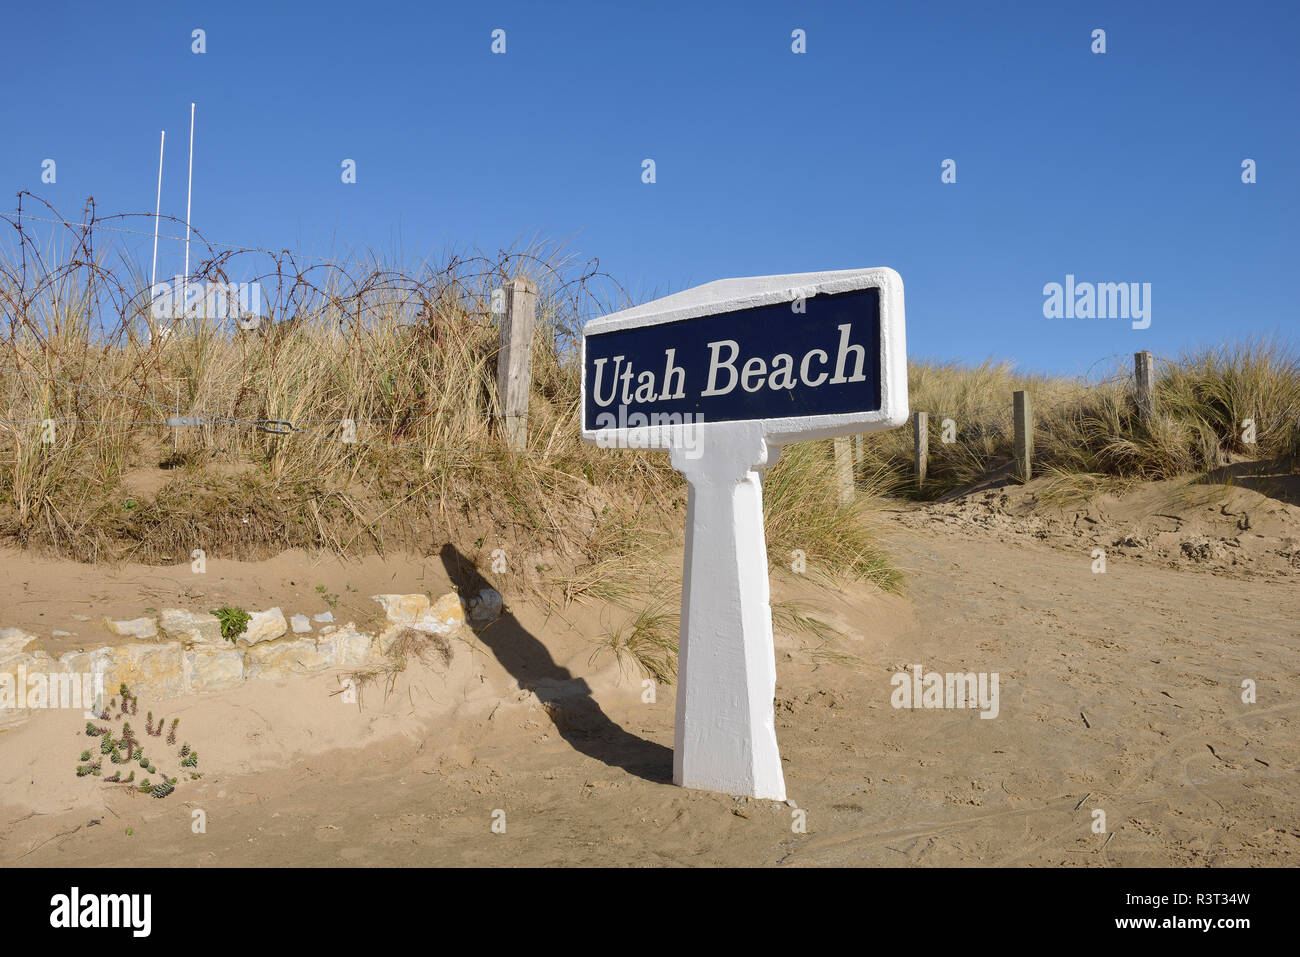 France, Lower Normandy, Manche, Sainte Marie du Mont, Utah Beach, Barbed wire fence and sign Utah Beach Stock Photo